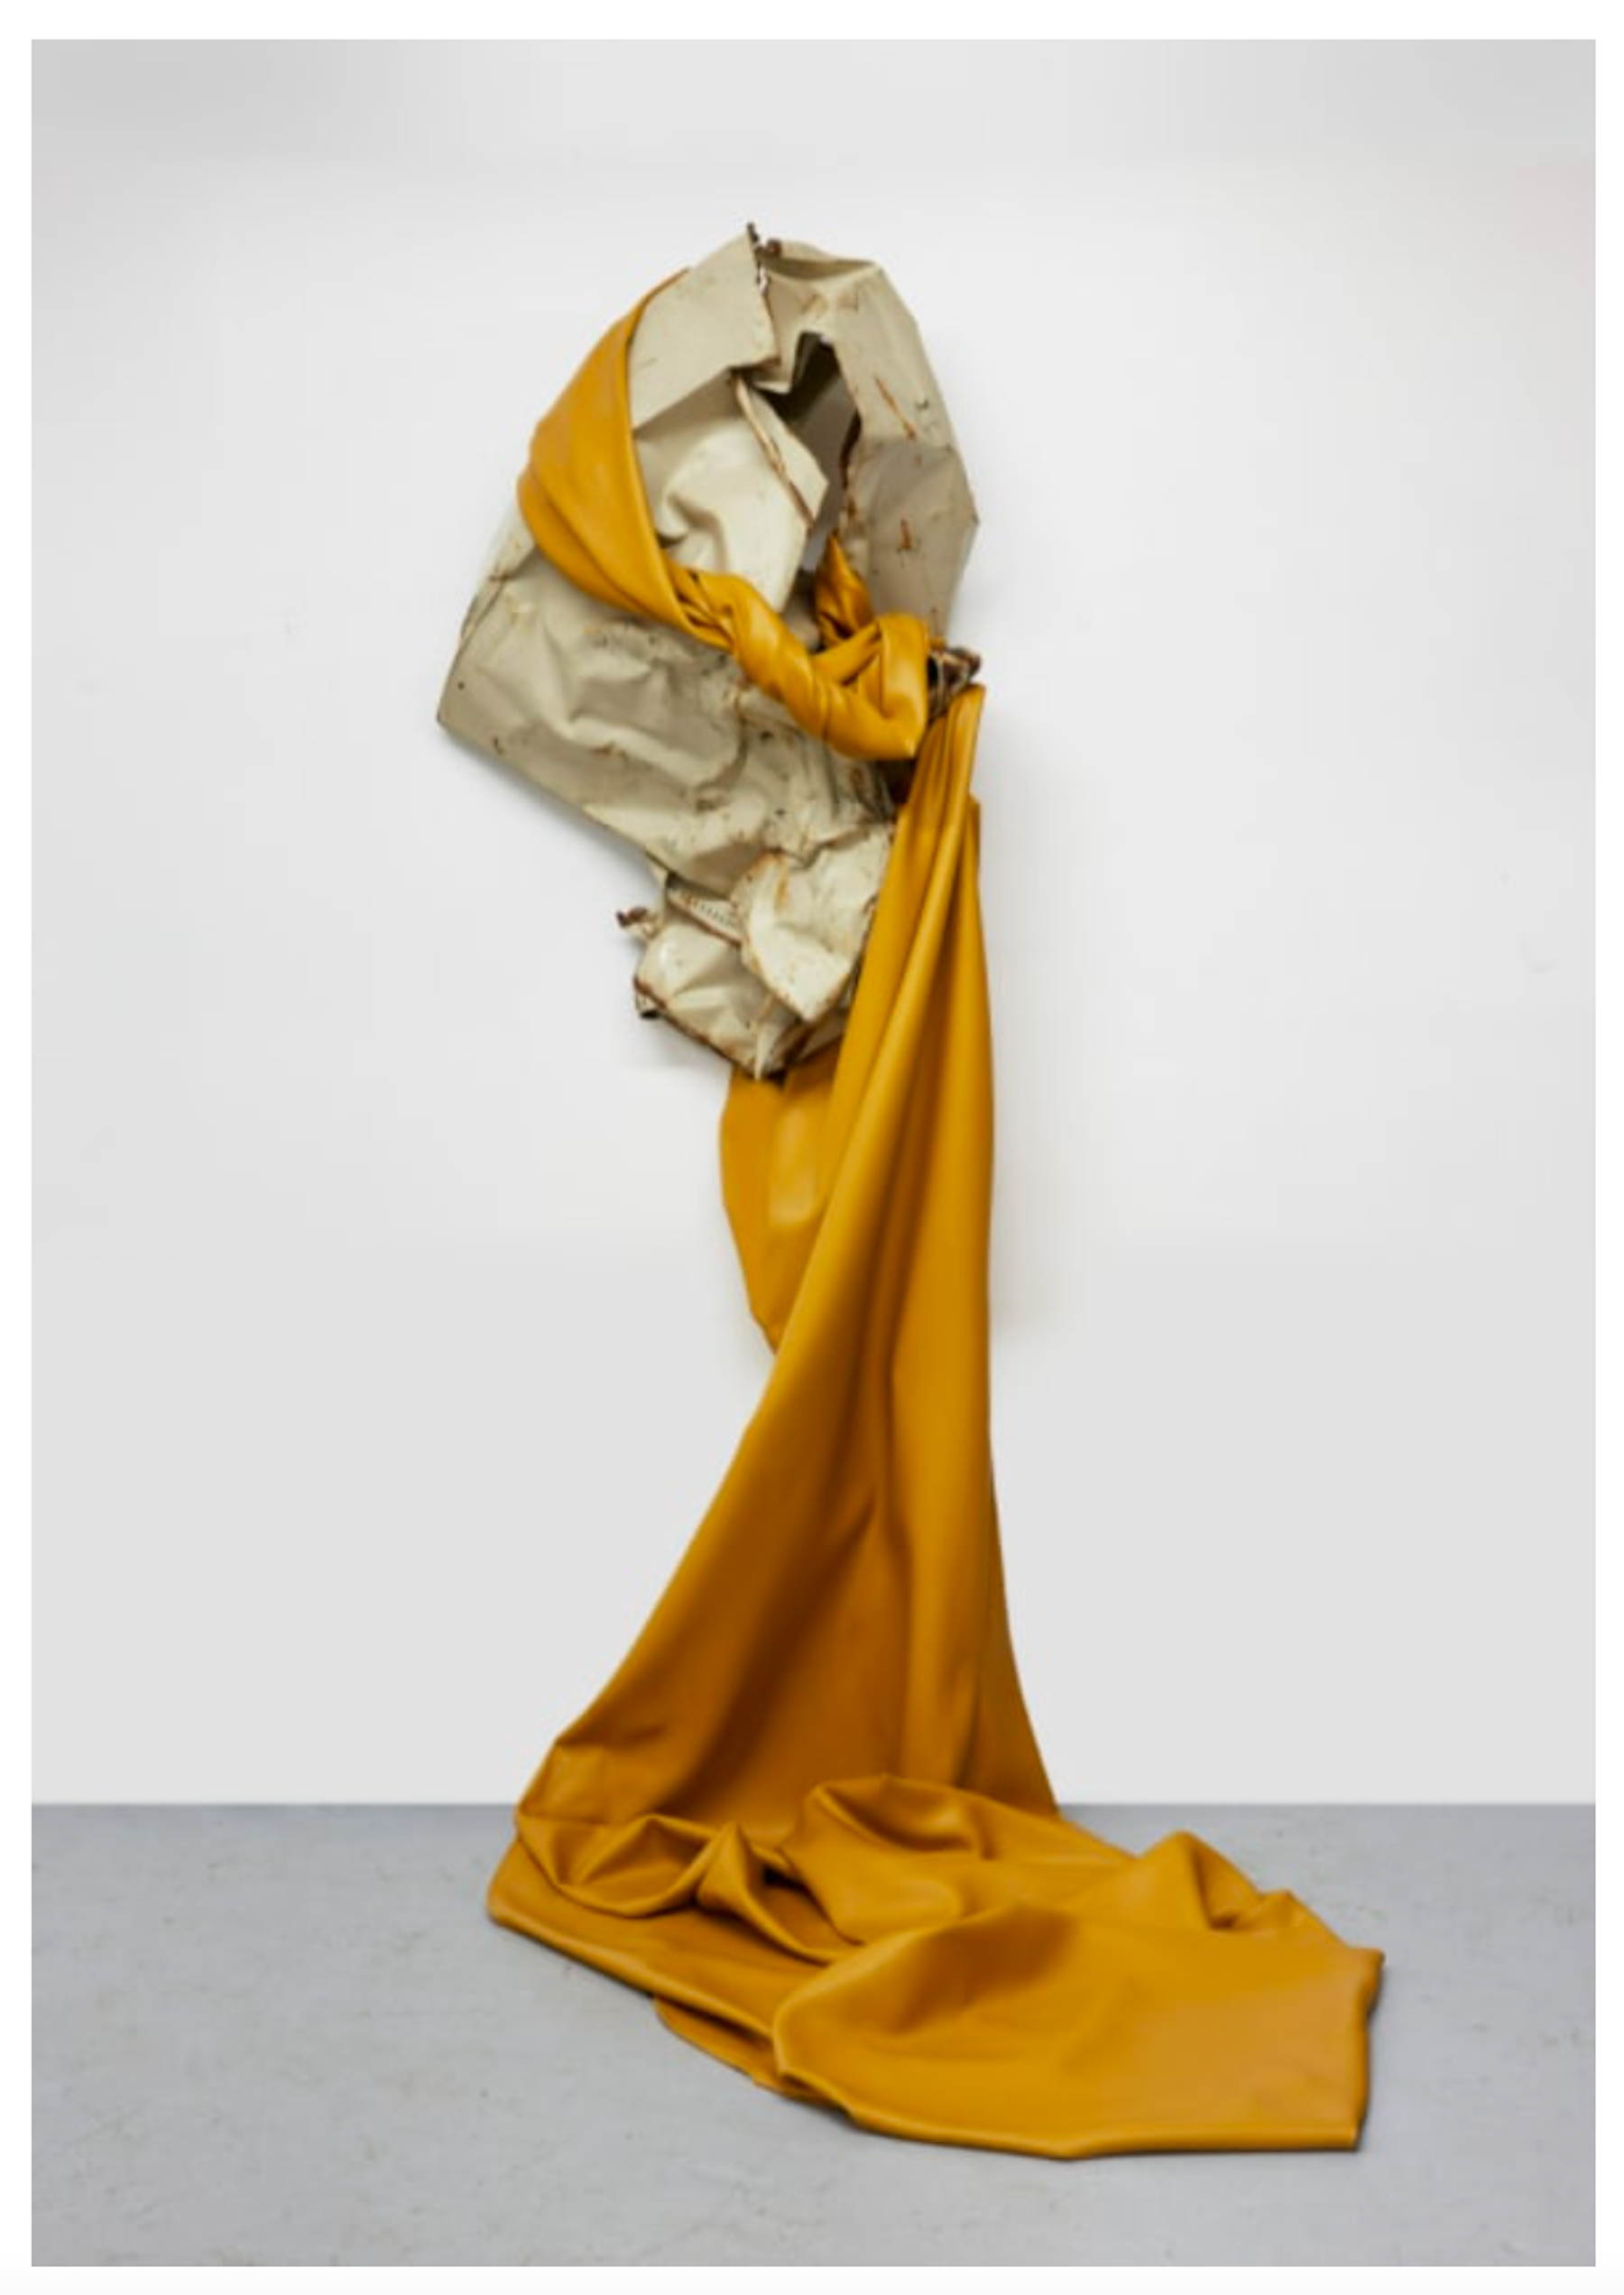 """Kennedy Yanko """"Remnants of Rust on My Face,"""" 2021 Paint skin, metal, steel cable 101"""" x 70"""" x 61"""" [HxWxD] (256.54 x 177.8 x 154.94 cm) Inventory #YAN1019 Courtesy of the artist and Vielmetter Los Angeles Photo credit: Martin Parsekian"""